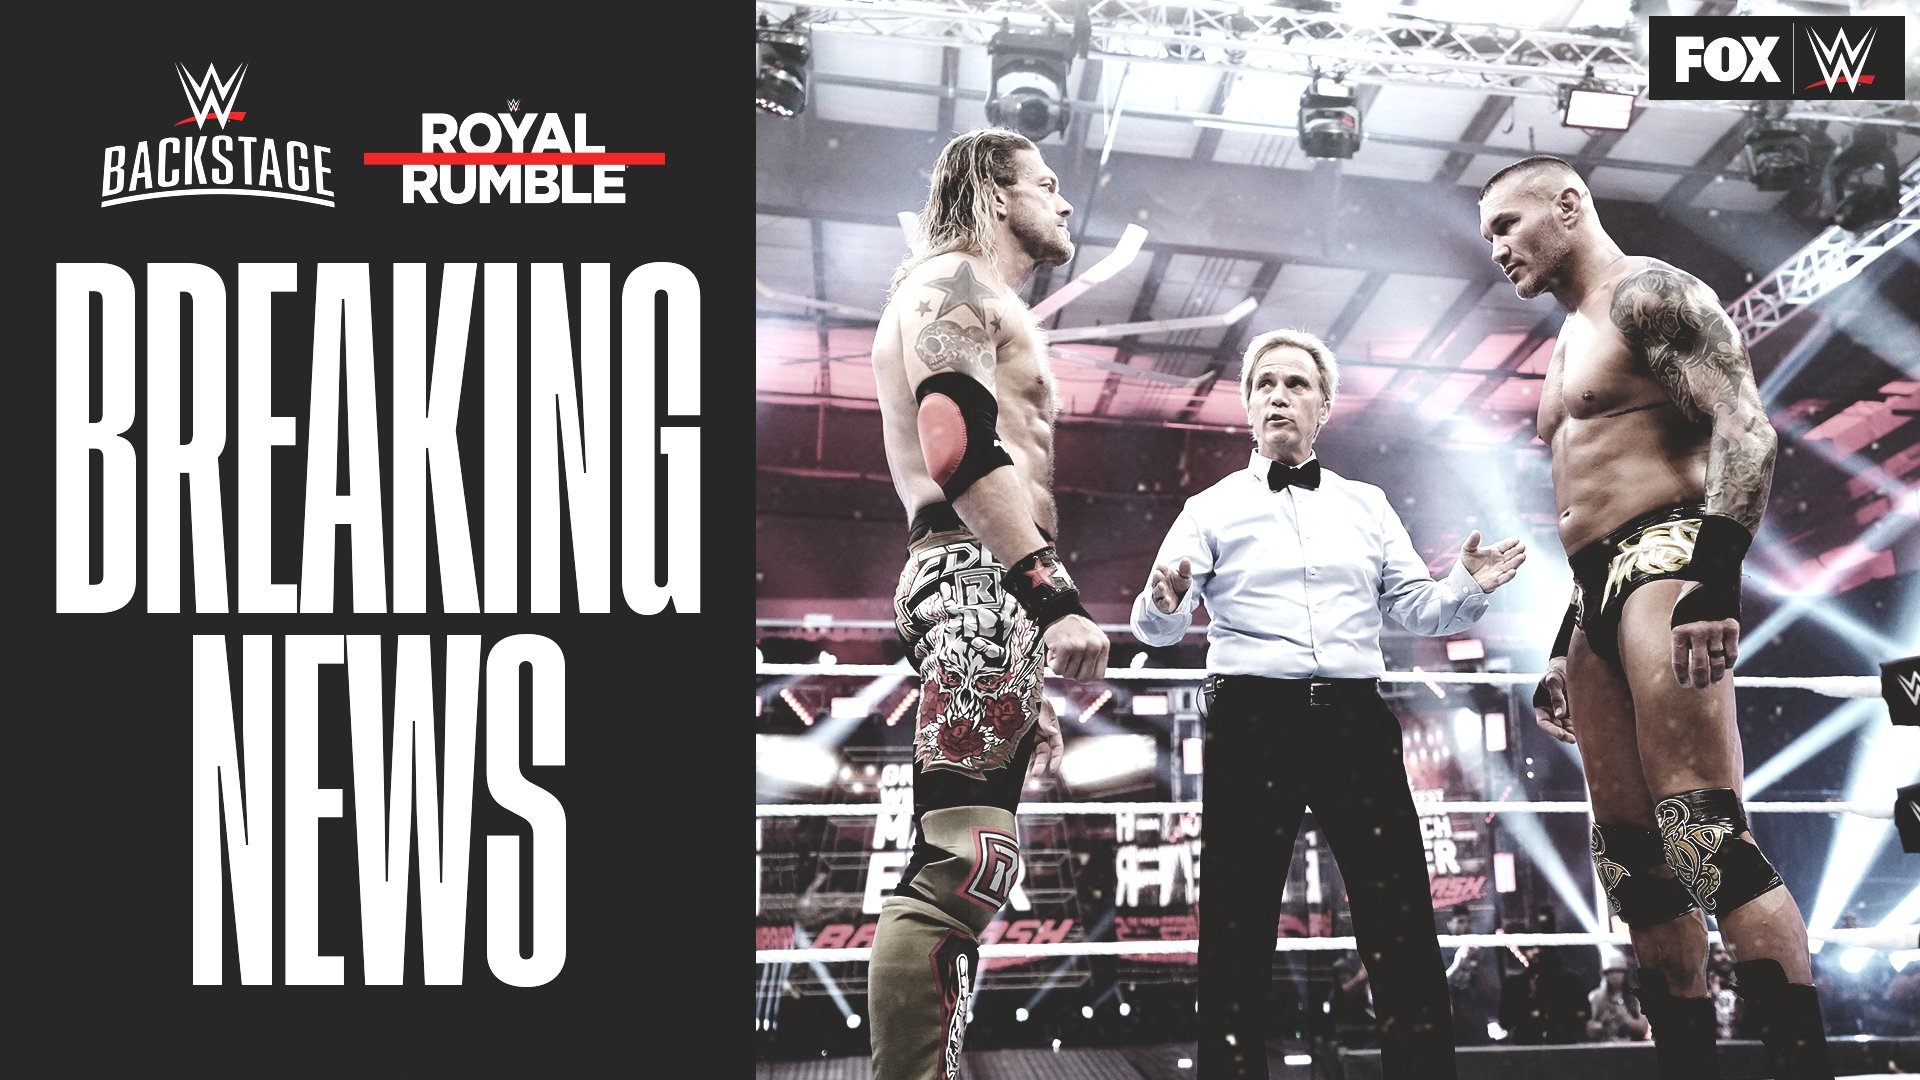 Both Edge and Randy Orton will be starting off the Royal Rumble match.